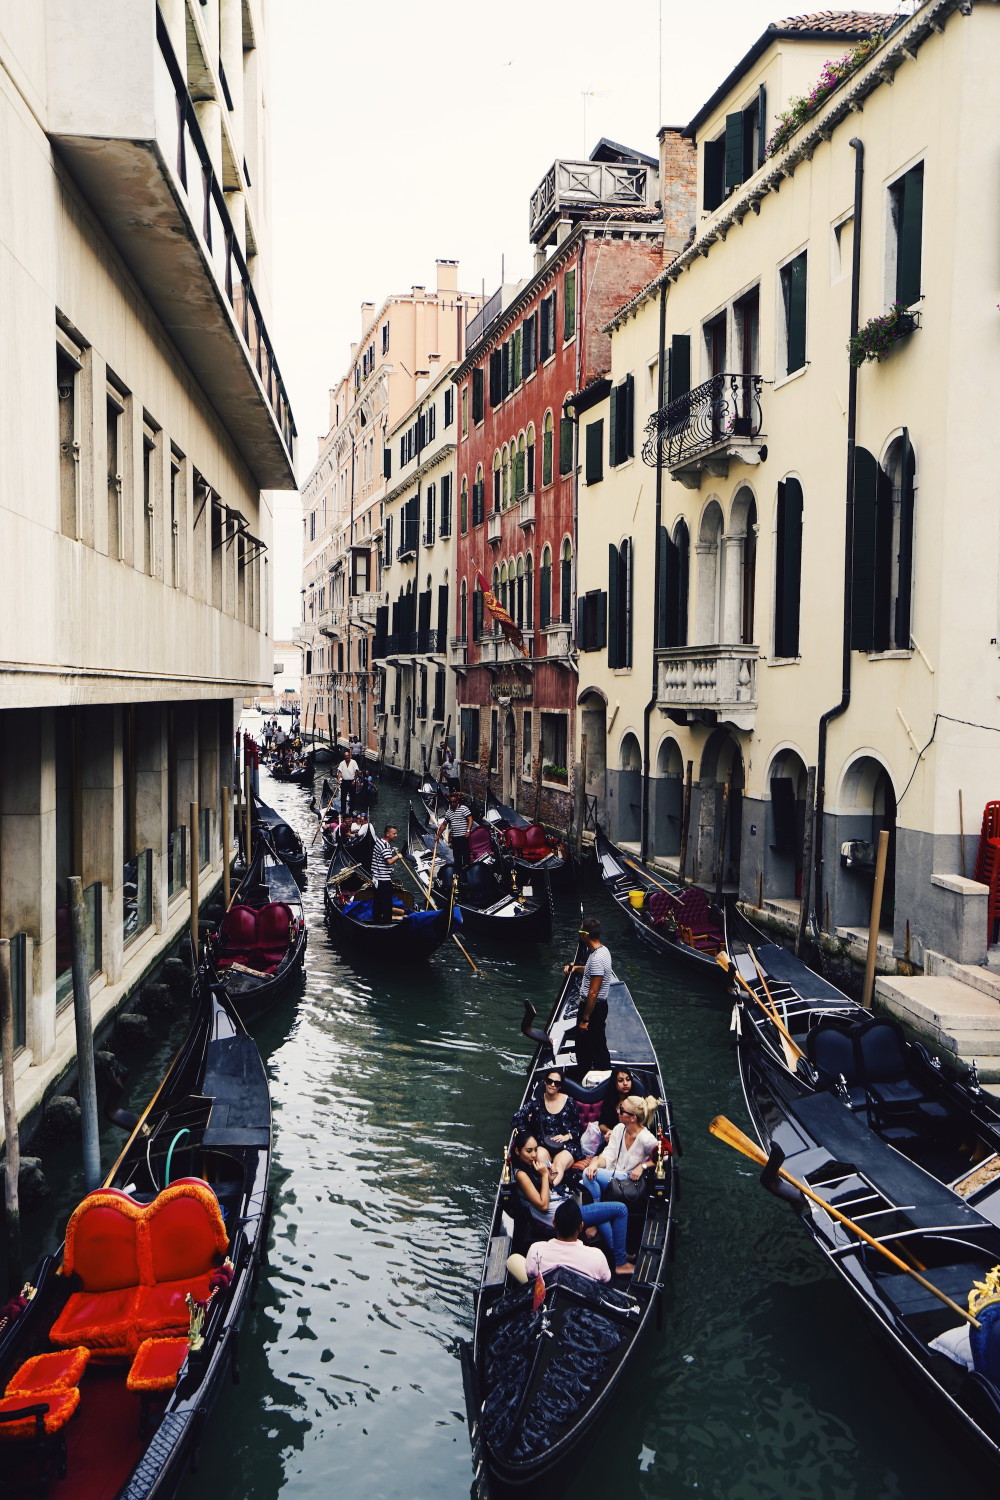 venice-gondola-traffic-jam-dante-vincent-photography